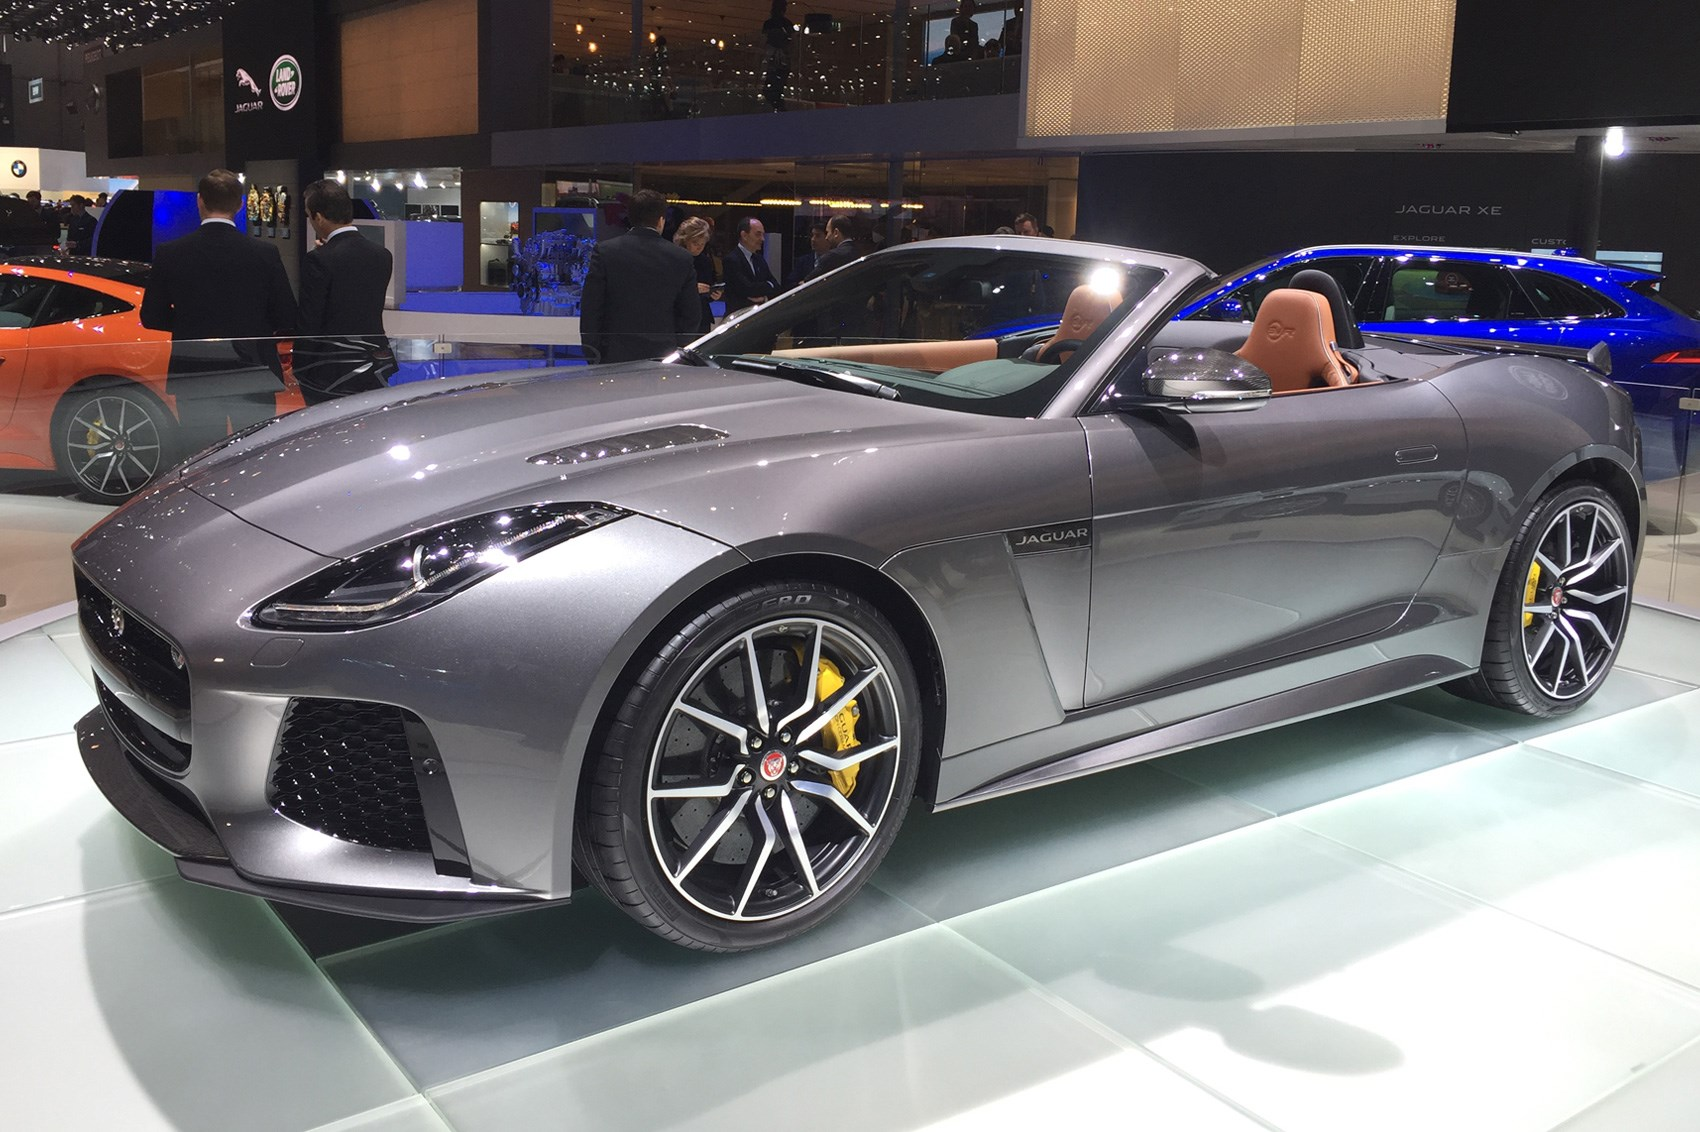 jaguar f type svr confirmed for 2016 geneva motor show by car magazine. Black Bedroom Furniture Sets. Home Design Ideas